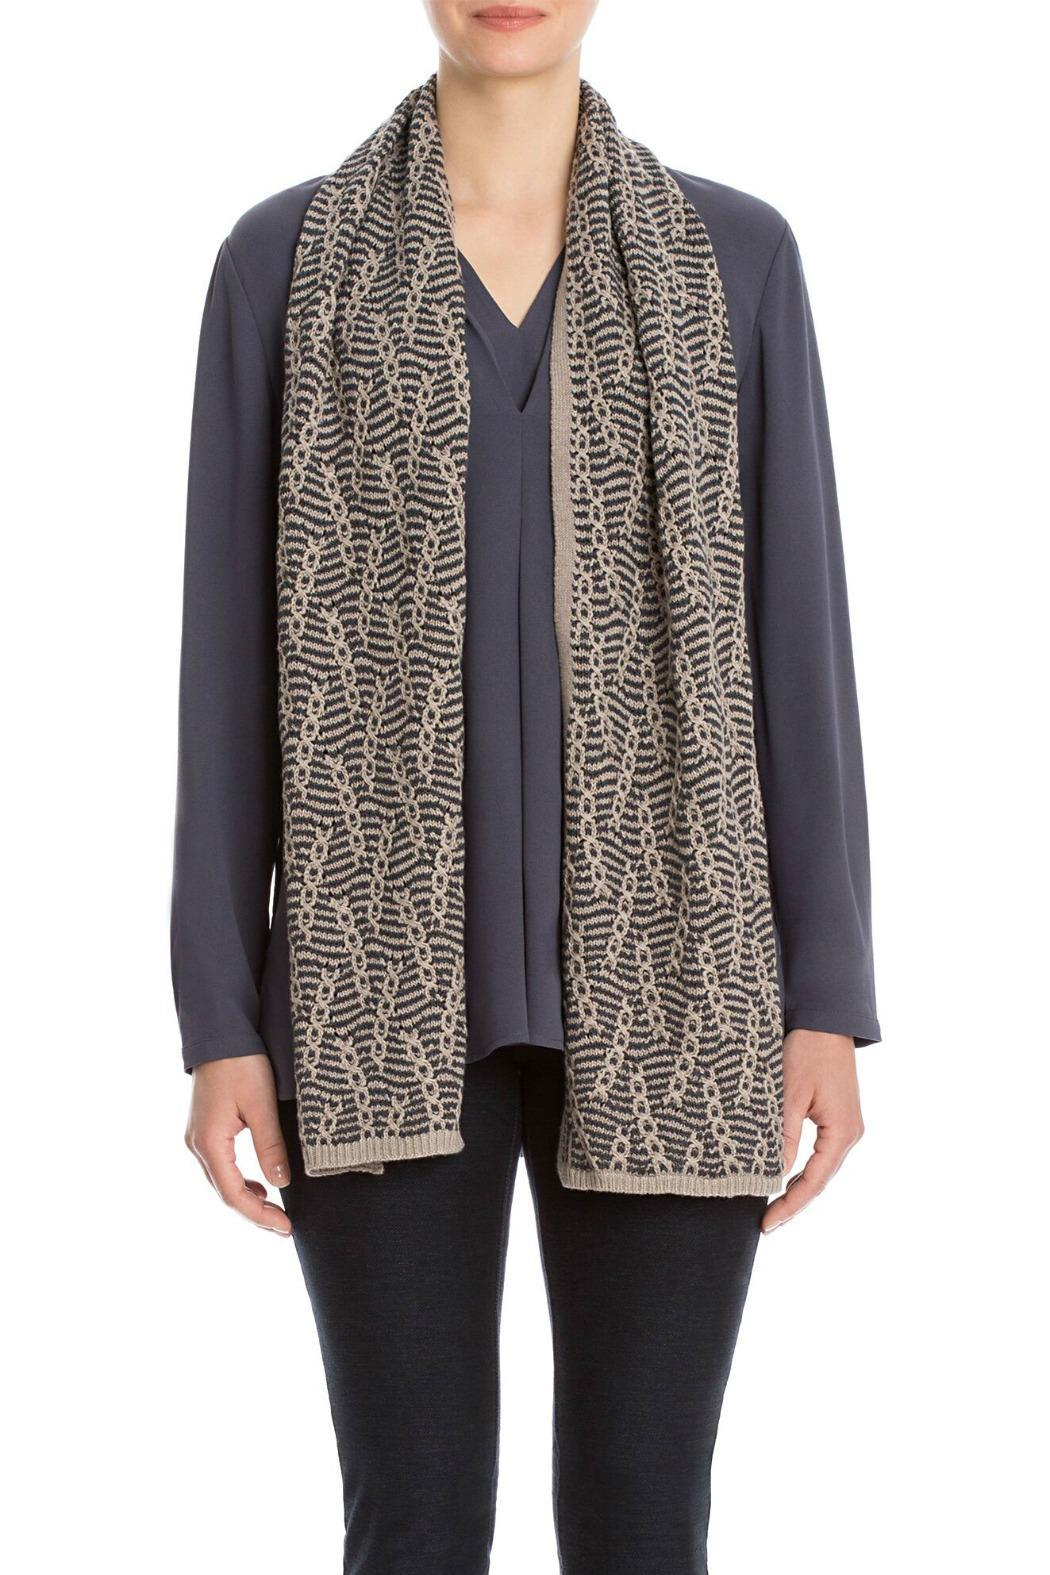 Nic + Zoe Traveling Cables Vest - Side Cropped Image